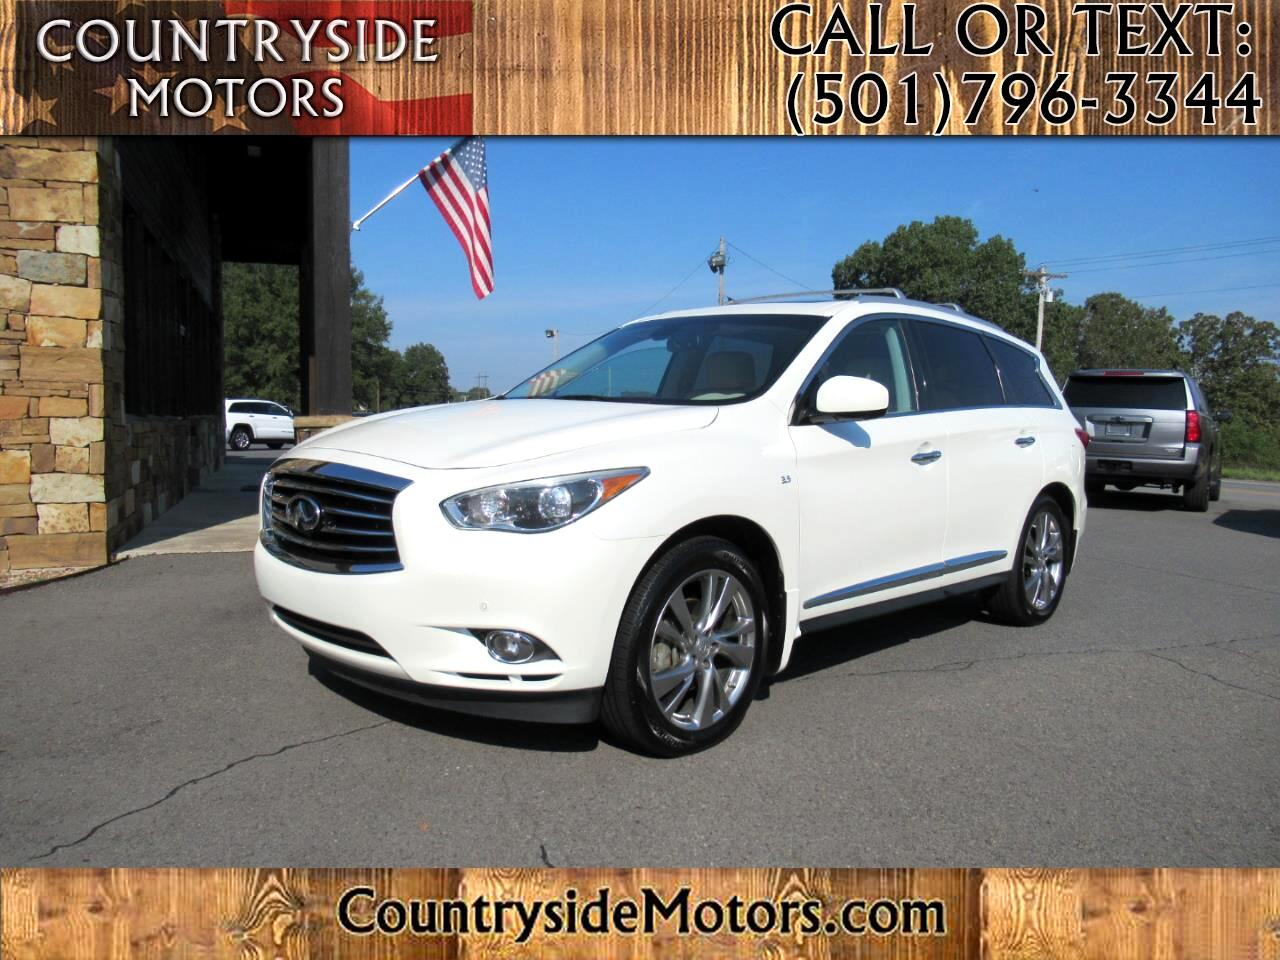 2015 Infiniti QX60 Luxury